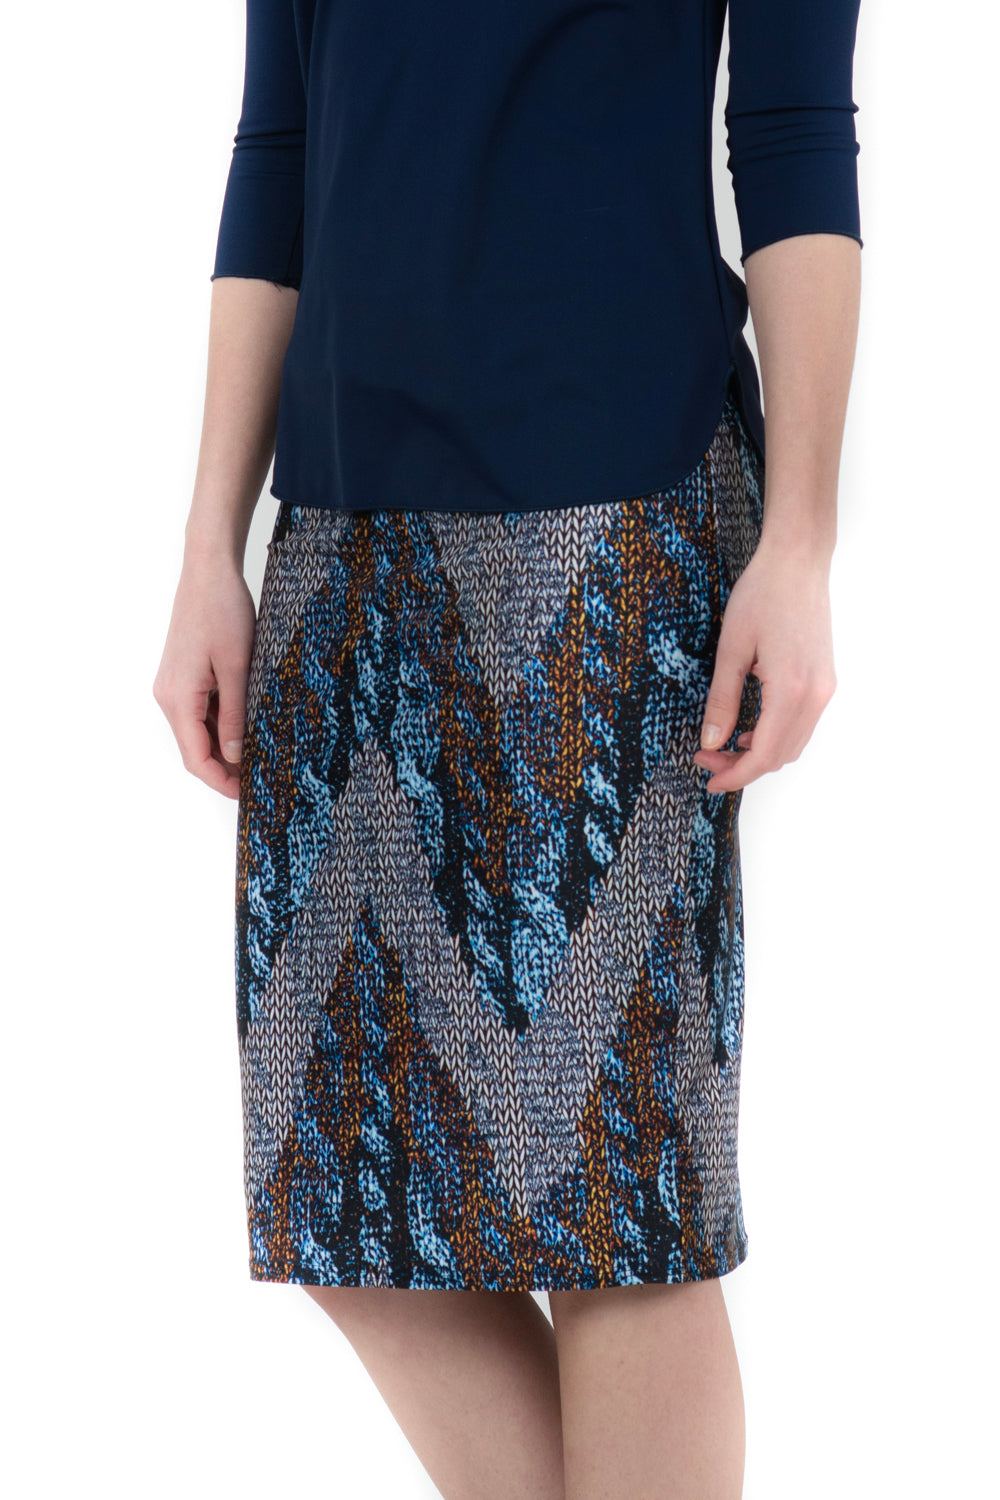 METALLIC CHEVRON PENCIL SKIRT